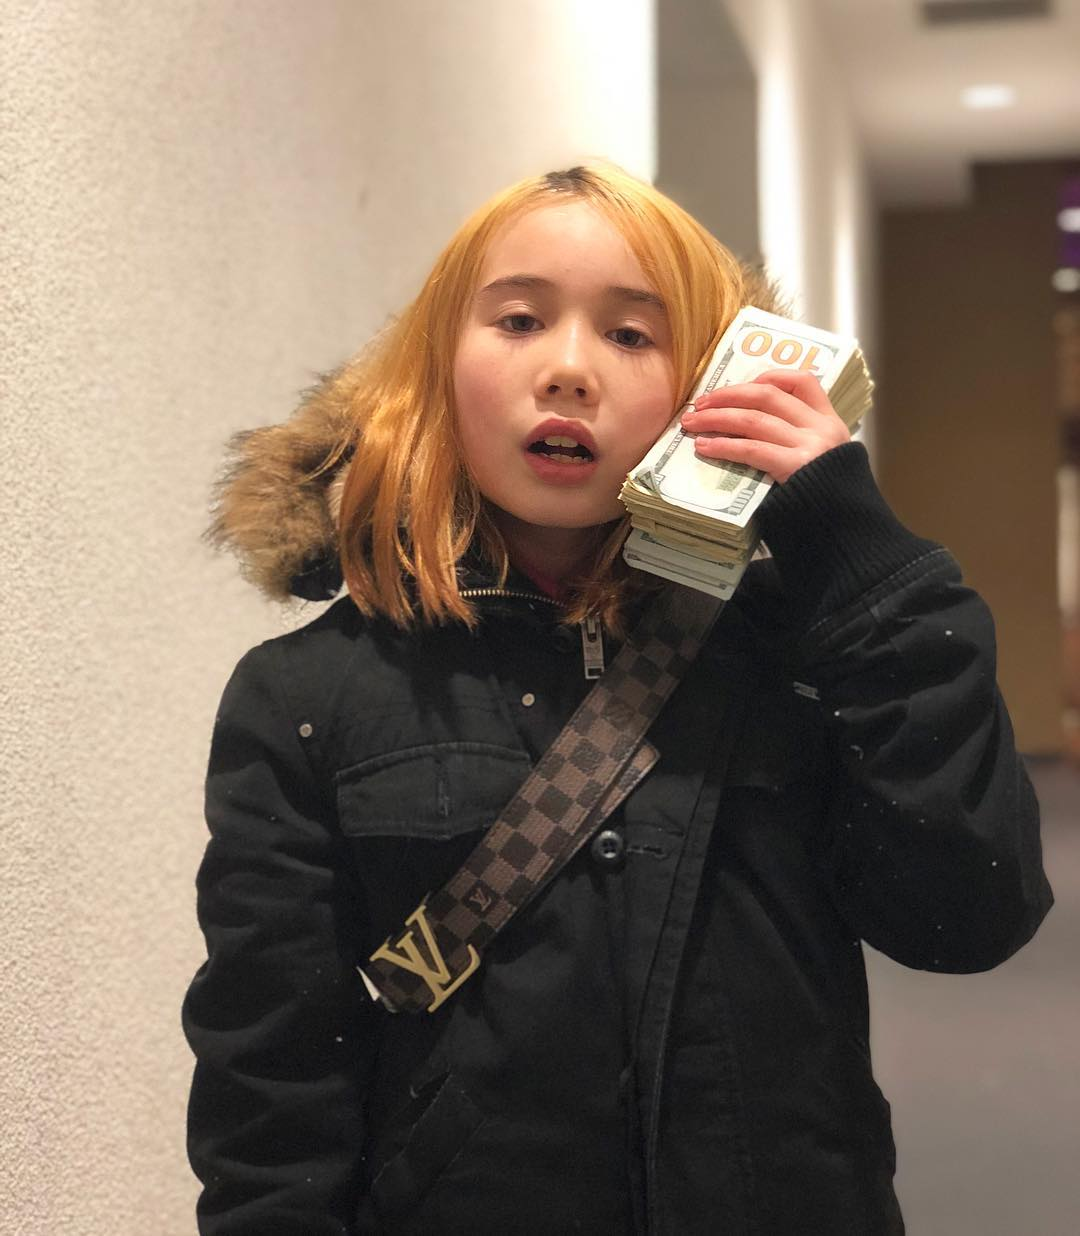 Lil Tay is holding a bunch of money and is keeping it near her hair